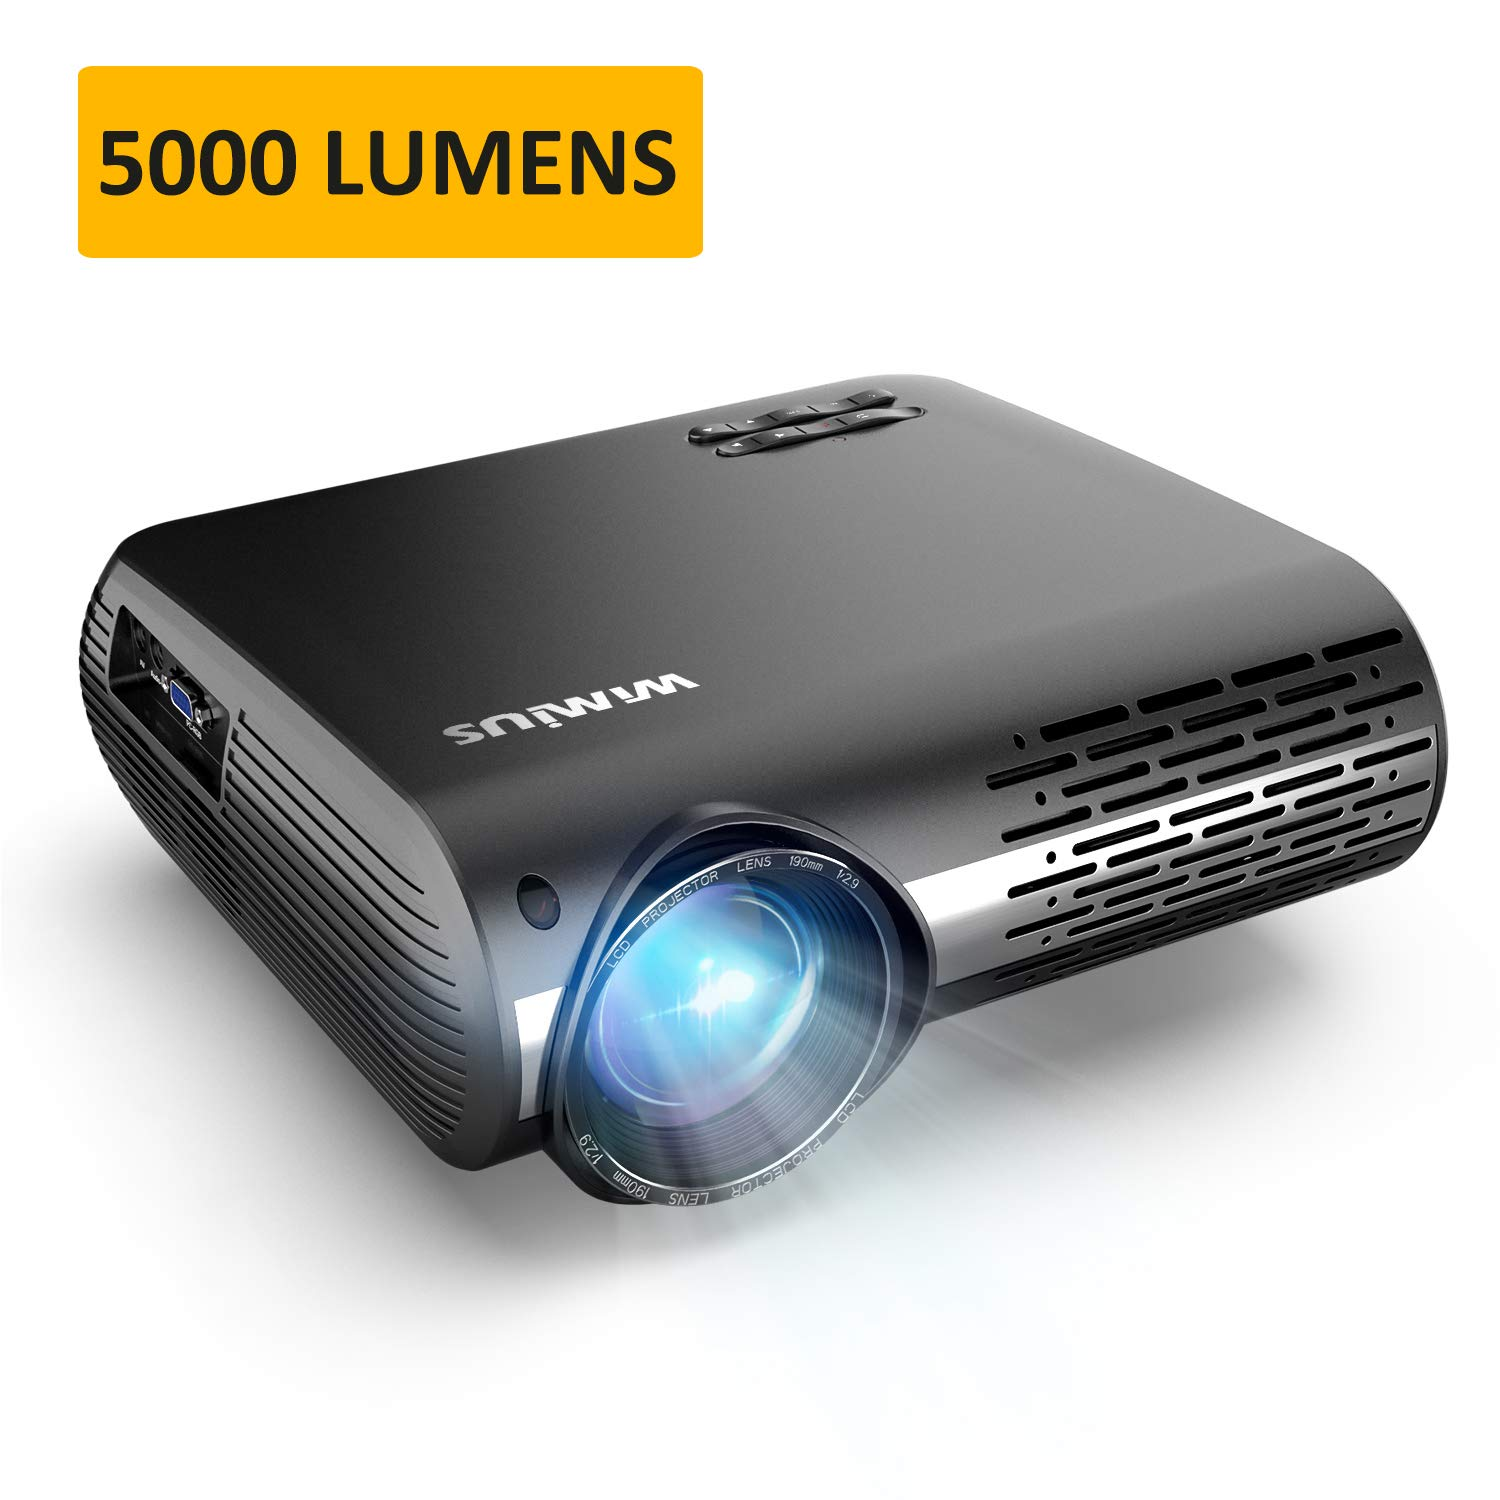 Projector, WiMiUS P20 Native 1080P LED Projector, 5000 Lux Movie Projector Support 4K Video 300'' Display ±50°Digital Keystone Correction 70,000 Hrs for Home Entertainment & PPT Business Presentation by WiMiUS